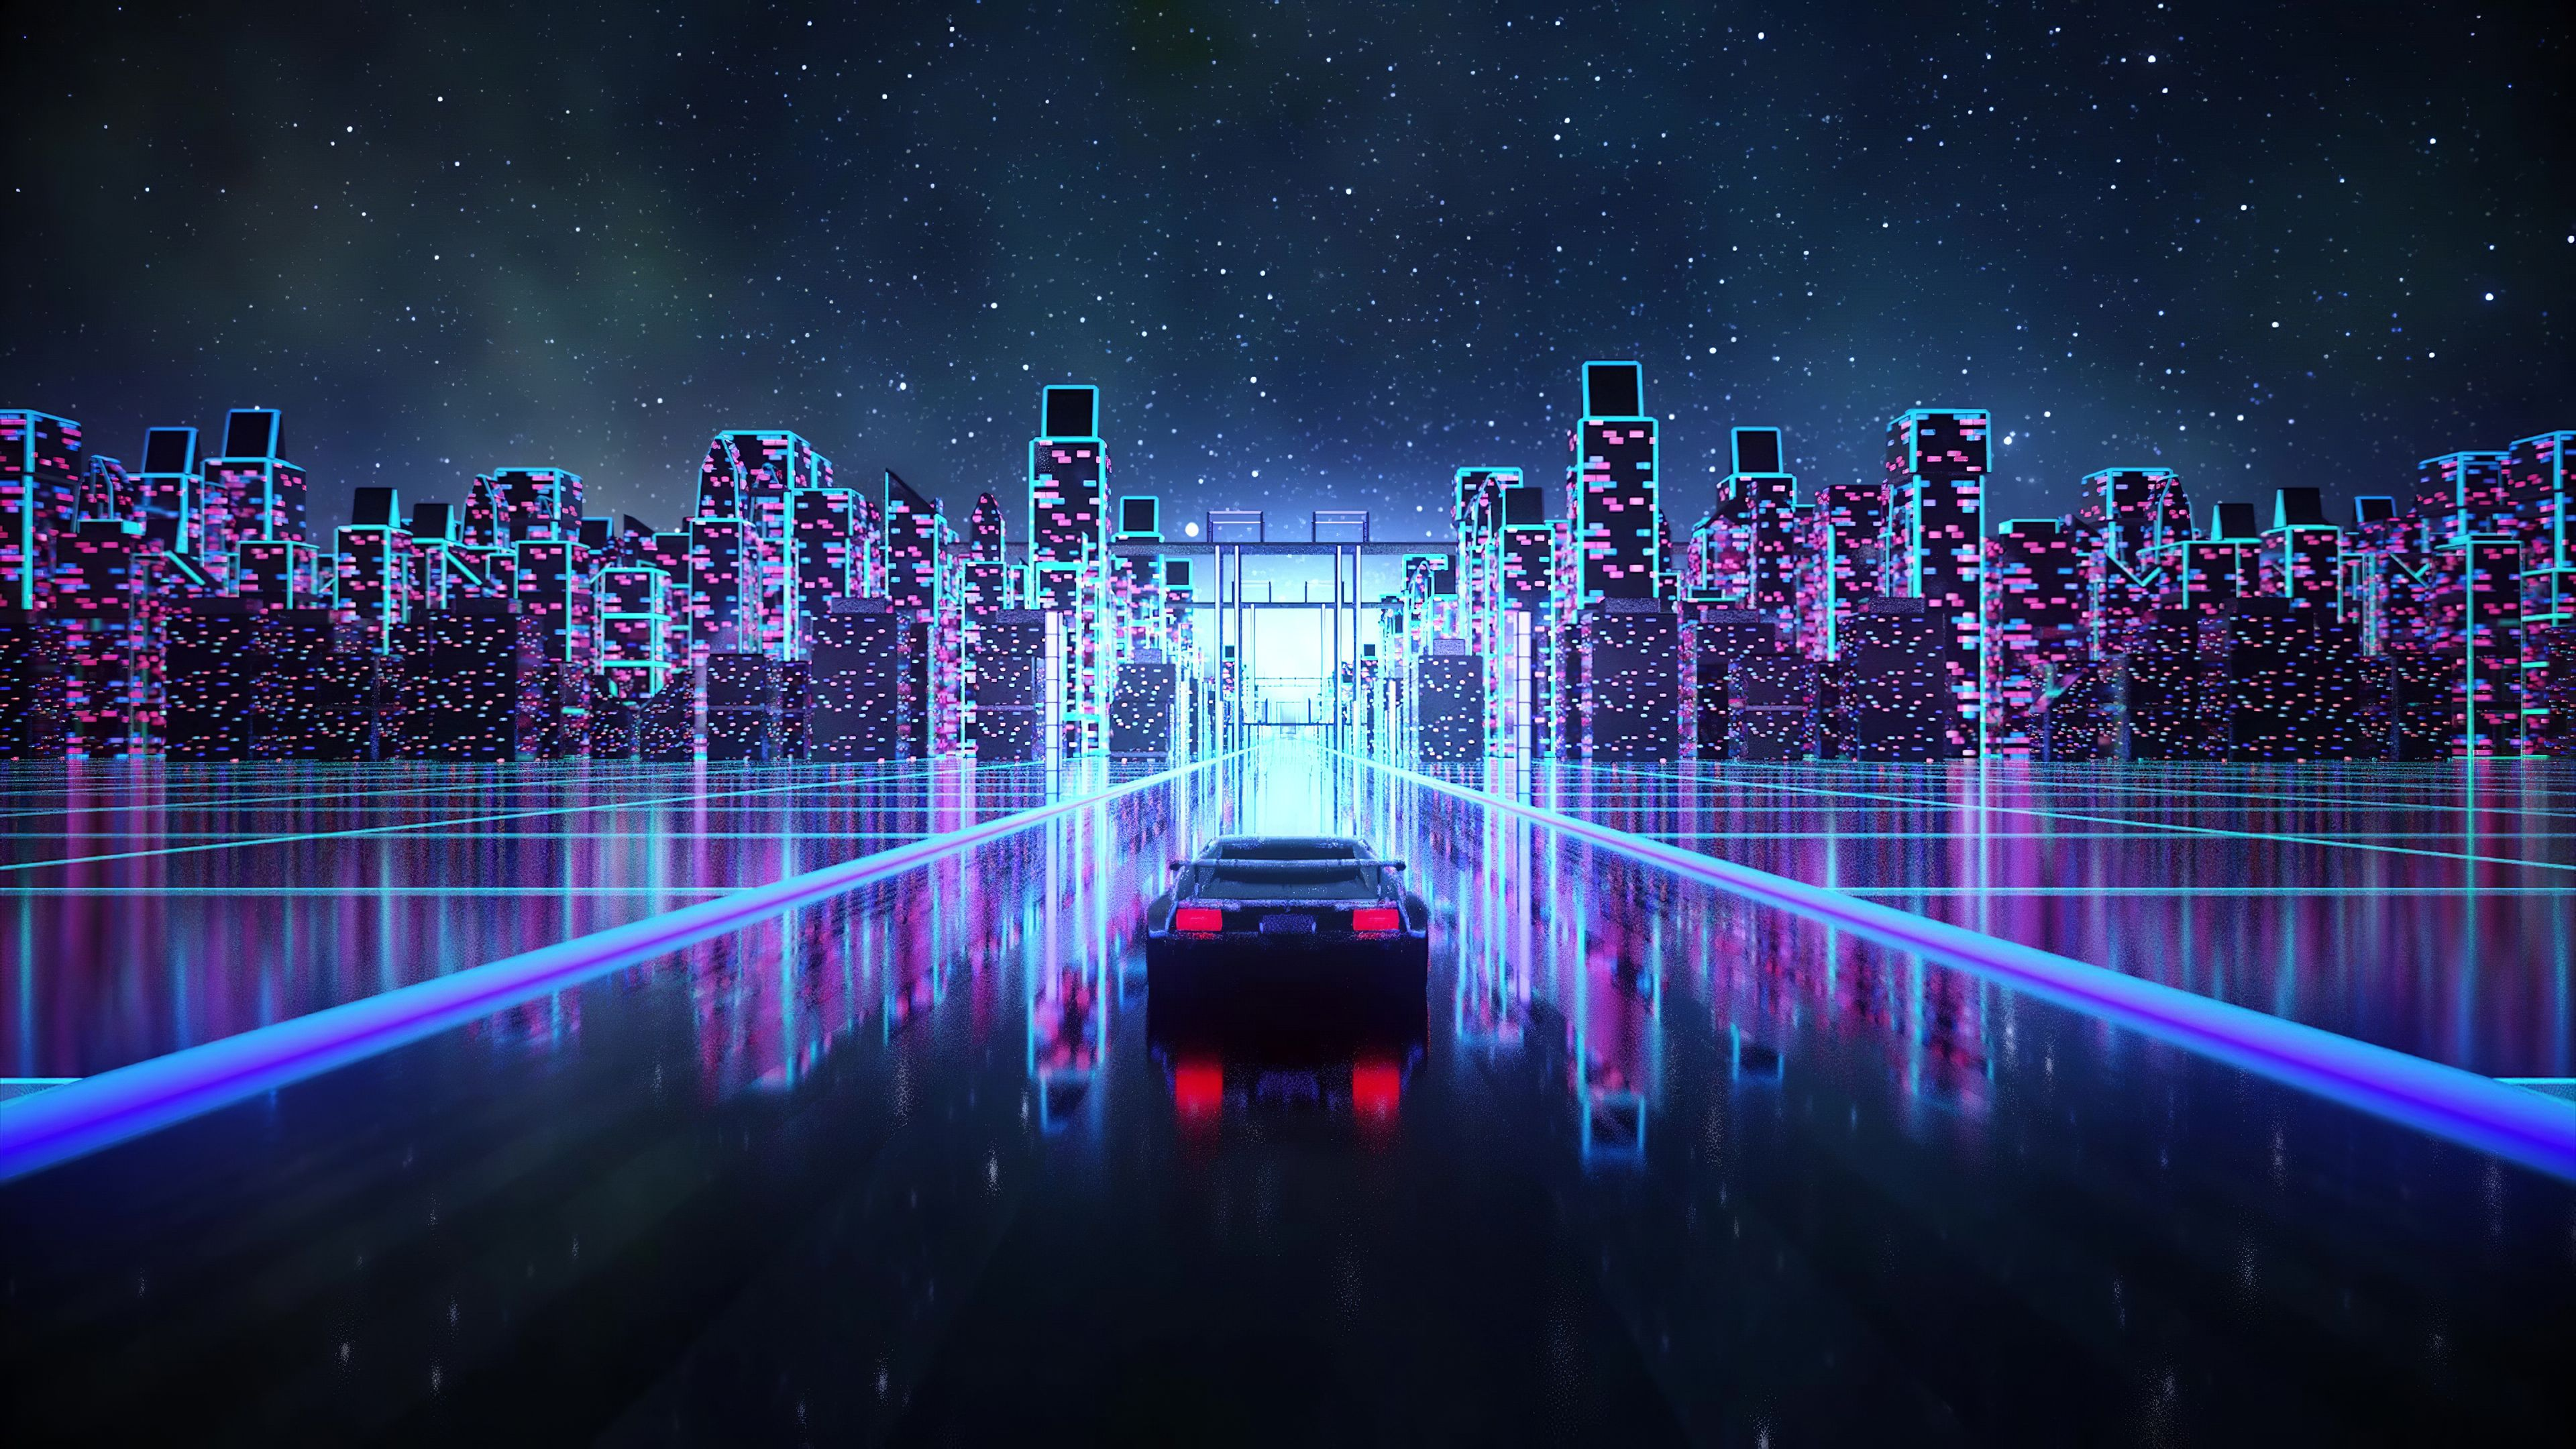 2560x1080 Cyber Outrun Vaporwave Synth Retro Car 4k 2560x1080 Resolution HD 4k Wallpapers, Image, Backgrounds, Photos and Pictures